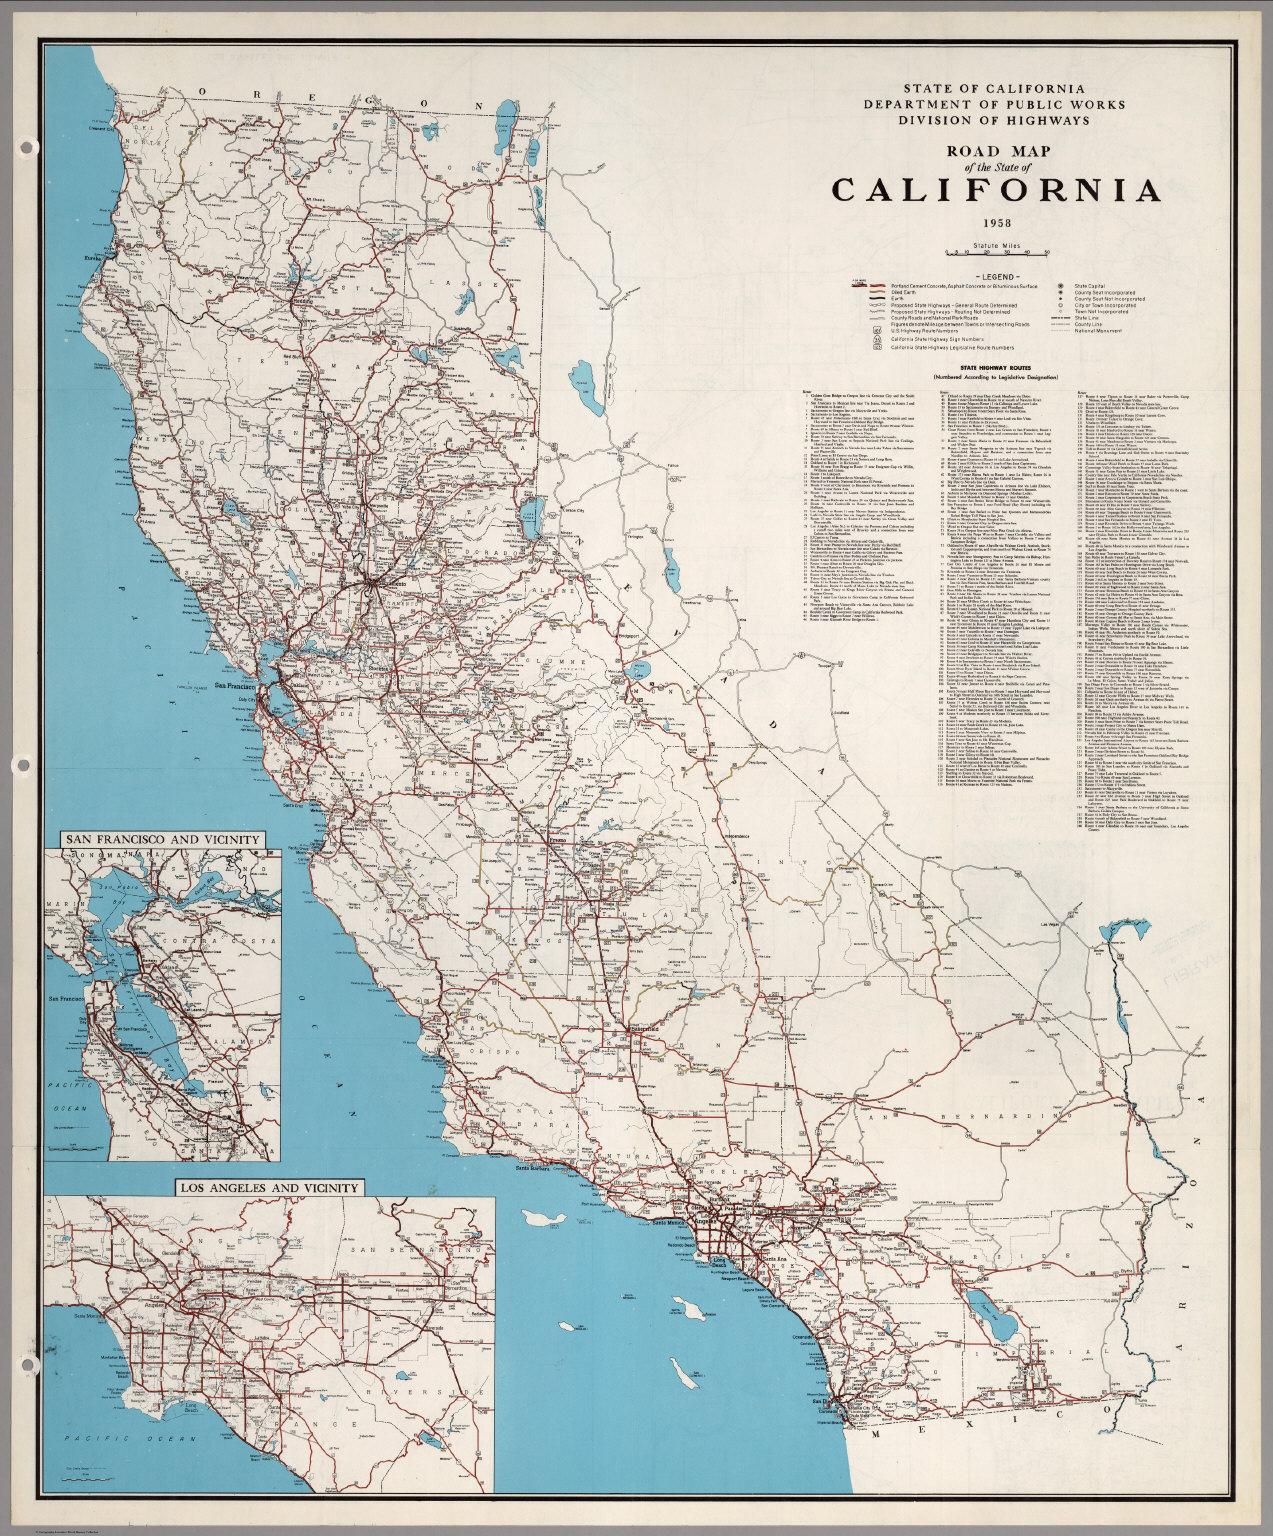 Road Map Of The State Of California, 1958. - David Rumsey Historical - California State Road Map